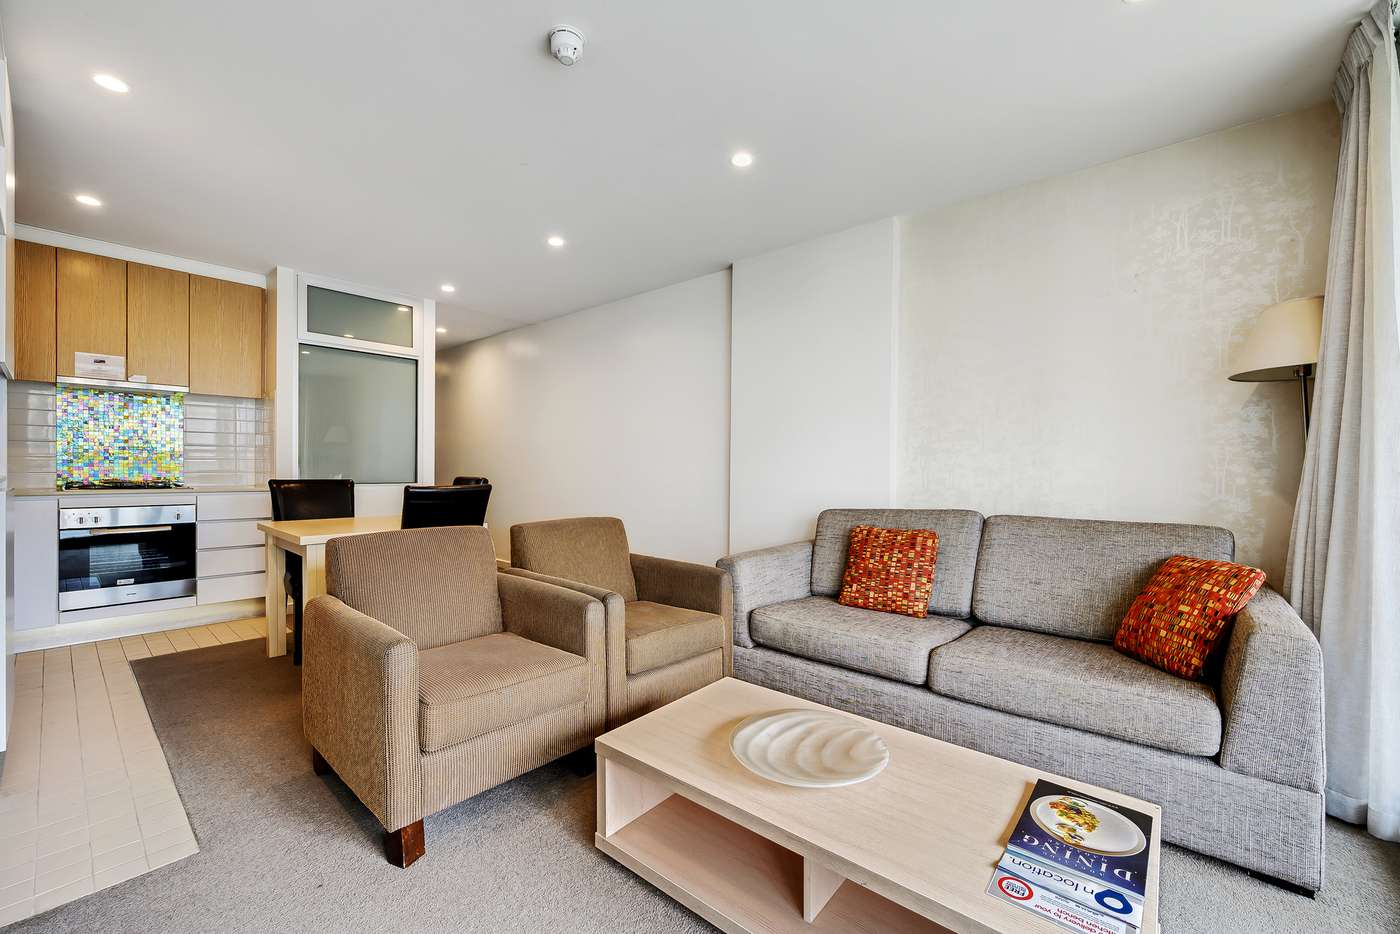 Fifth view of Homely apartment listing, 418/185 Morphett Street, Adelaide SA 5000